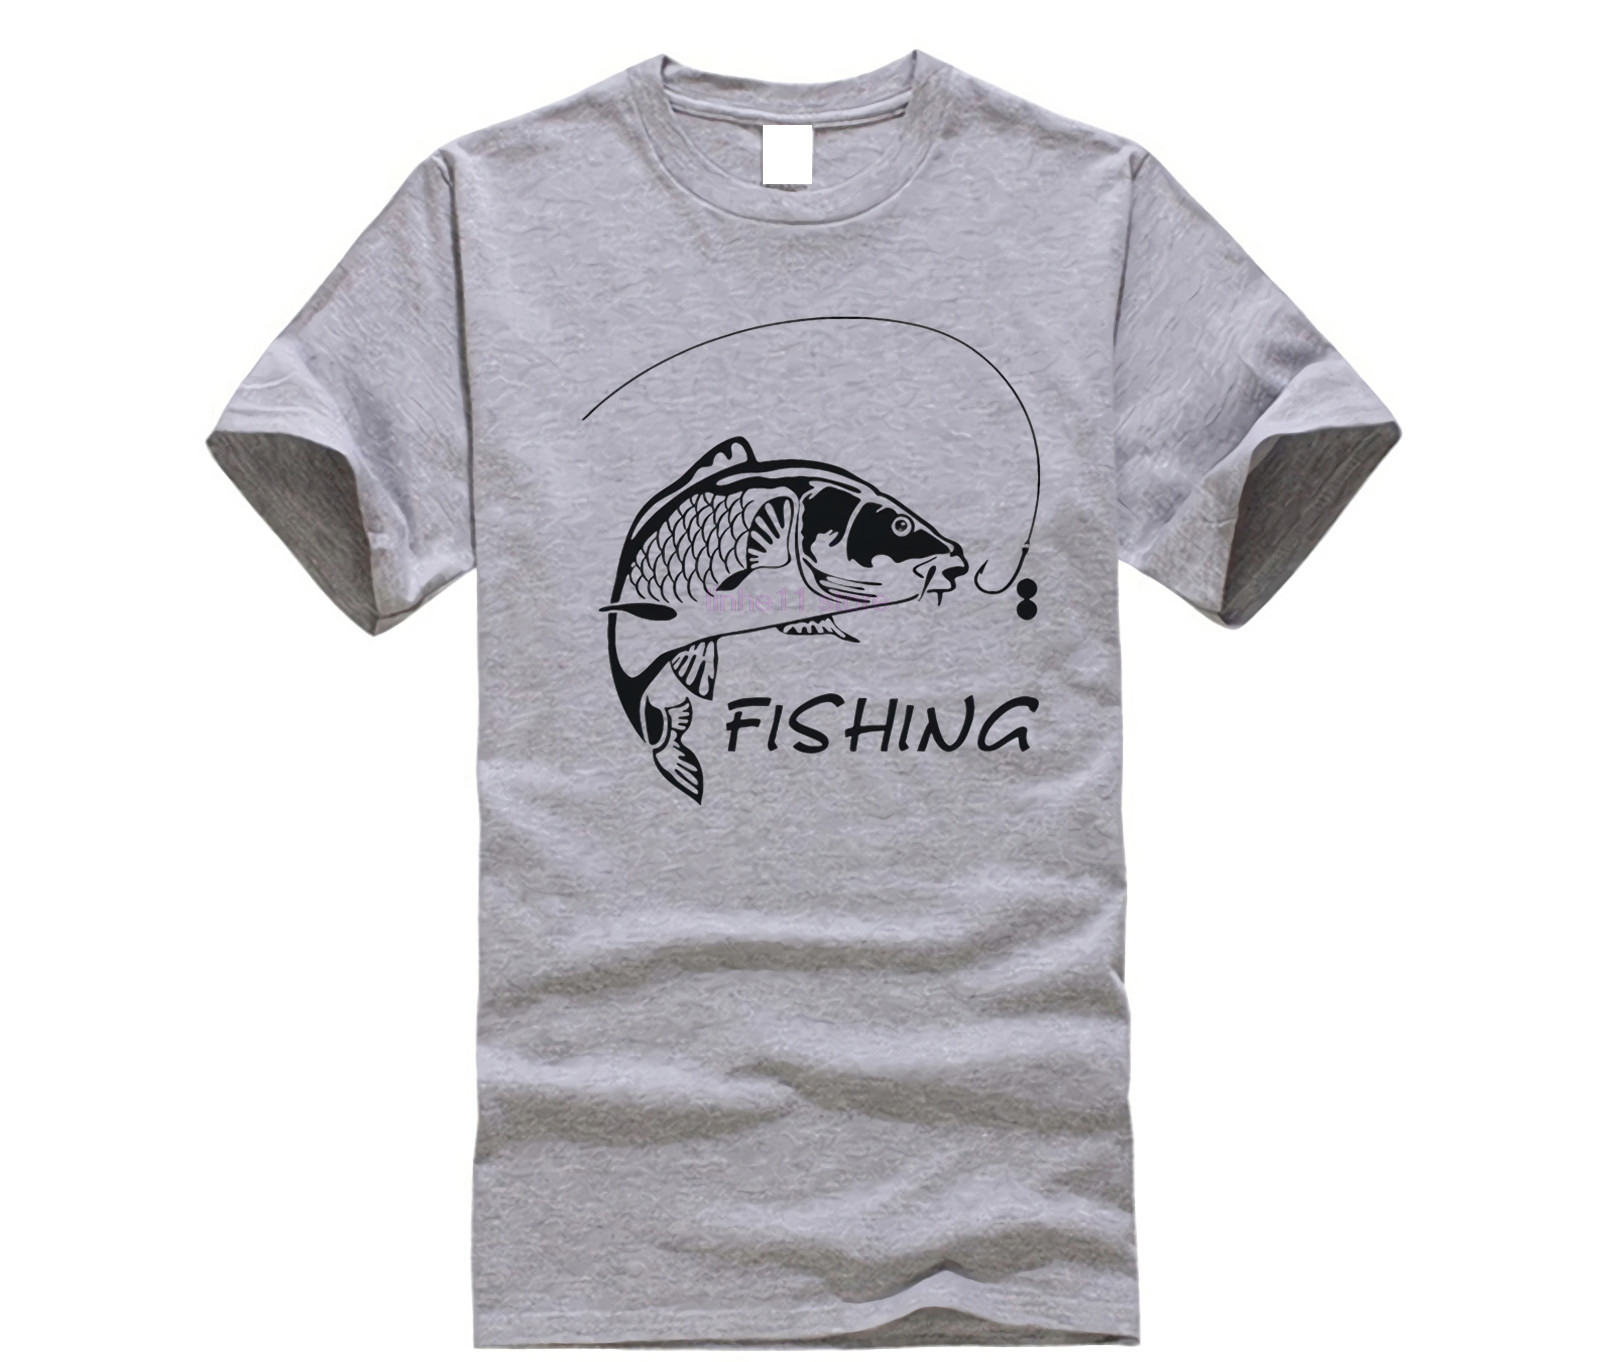 Fishings Carp T-shirts Love to Fish Printed Tshirt High Quality Mens O-Neck Cotton Short sleeves Tees Funny Men Fitness Tops